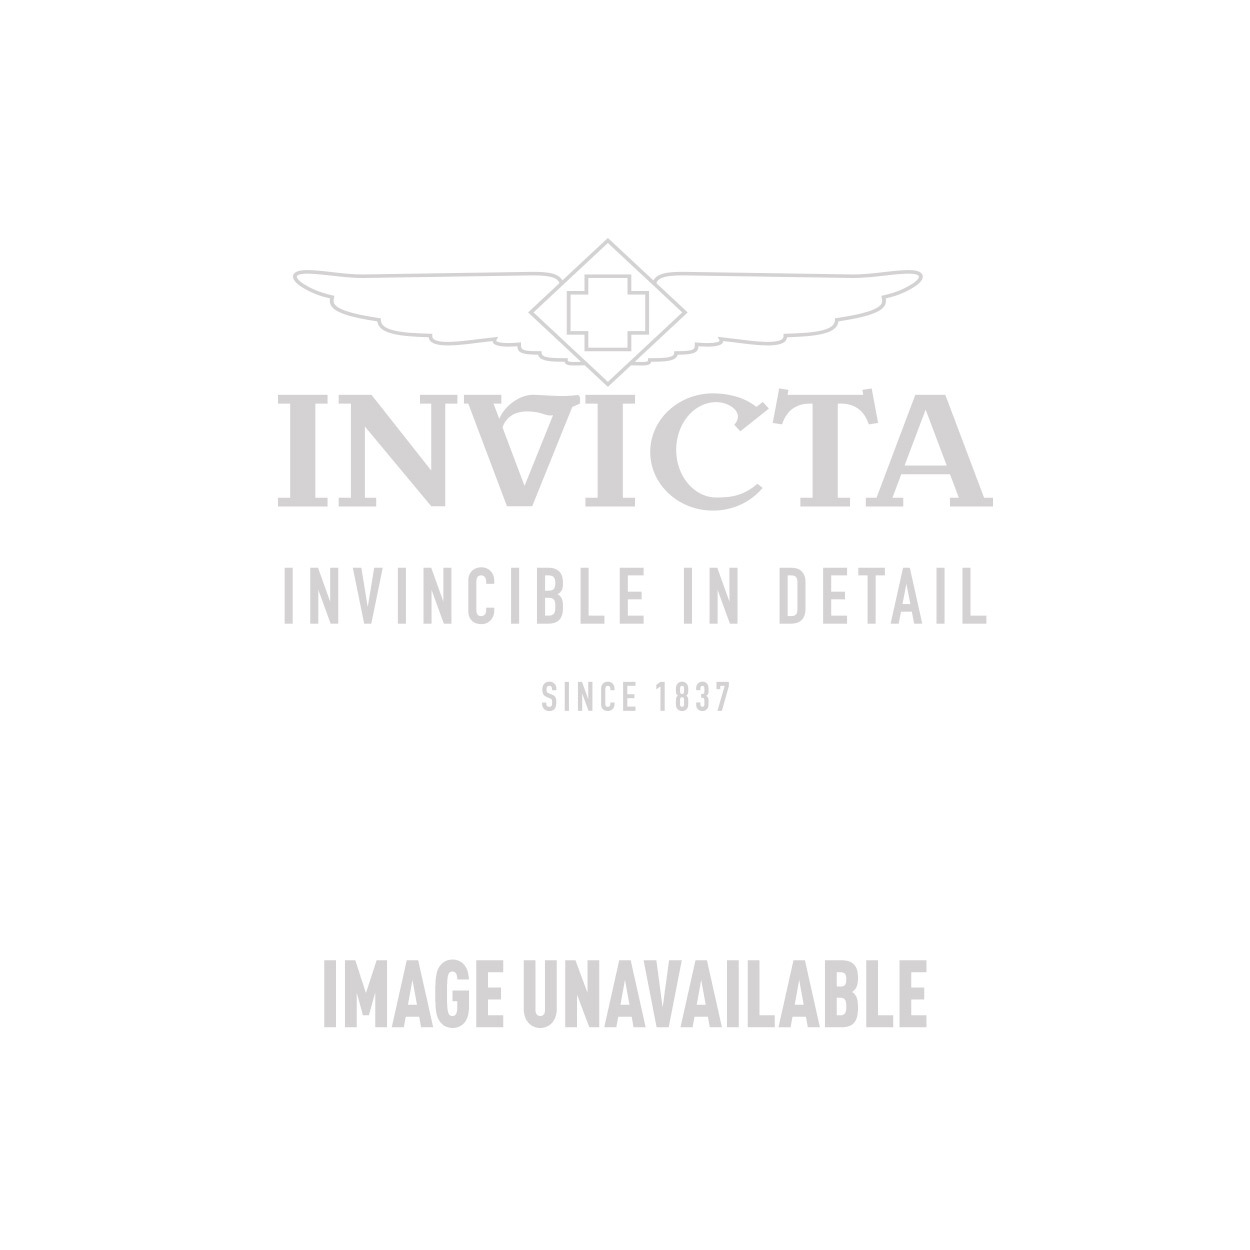 Invicta Reserve Swiss Made Quartz Watch - Stainless Steel case Stainless Steel band - Model 15823